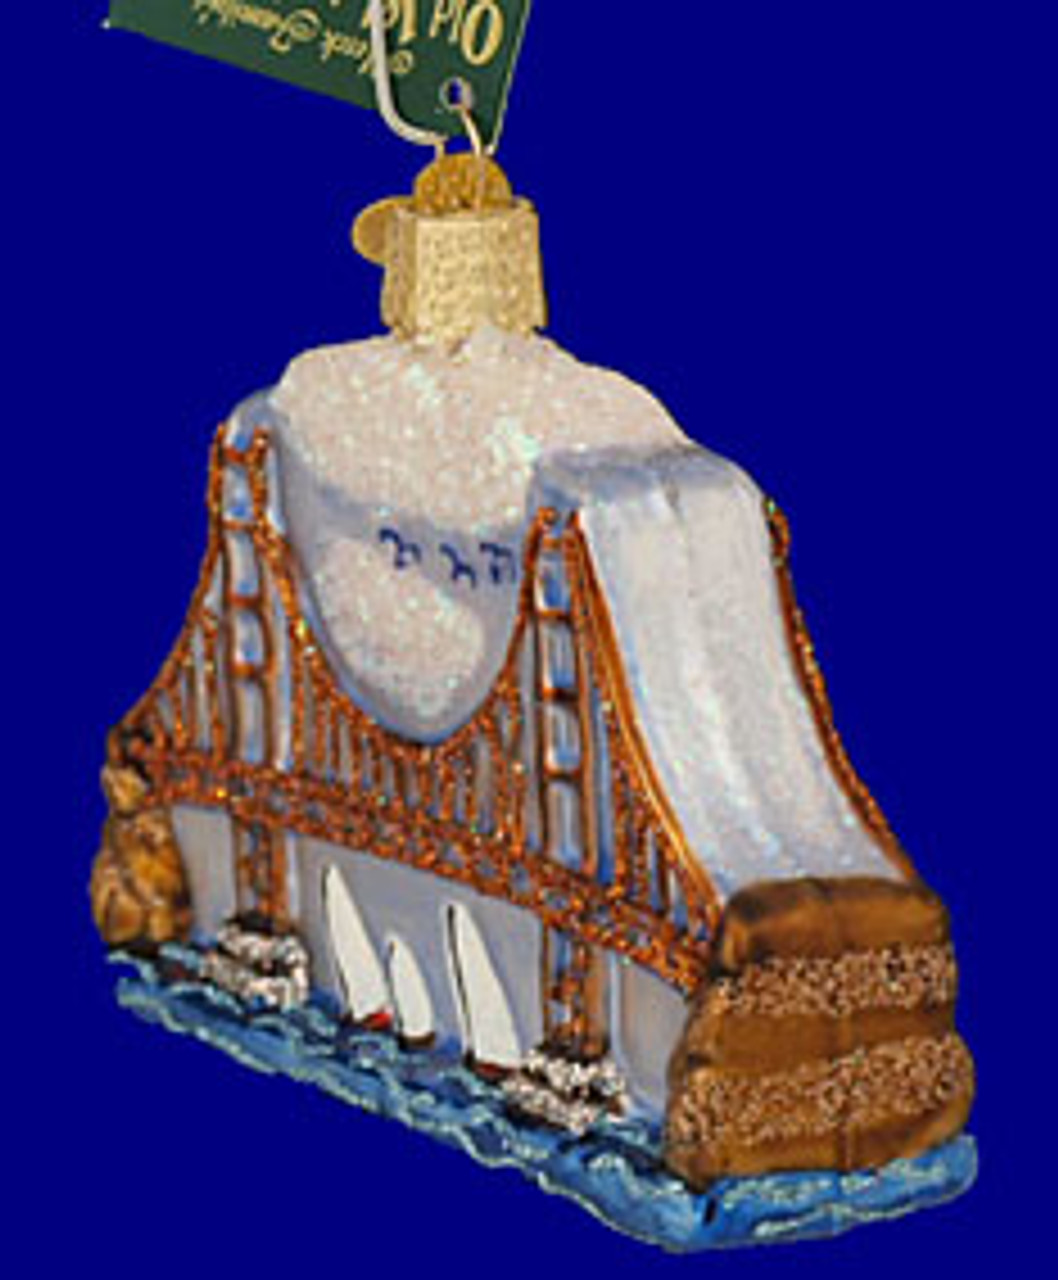 Golden Gate Bridge Glass Ornament By Old World Christmas